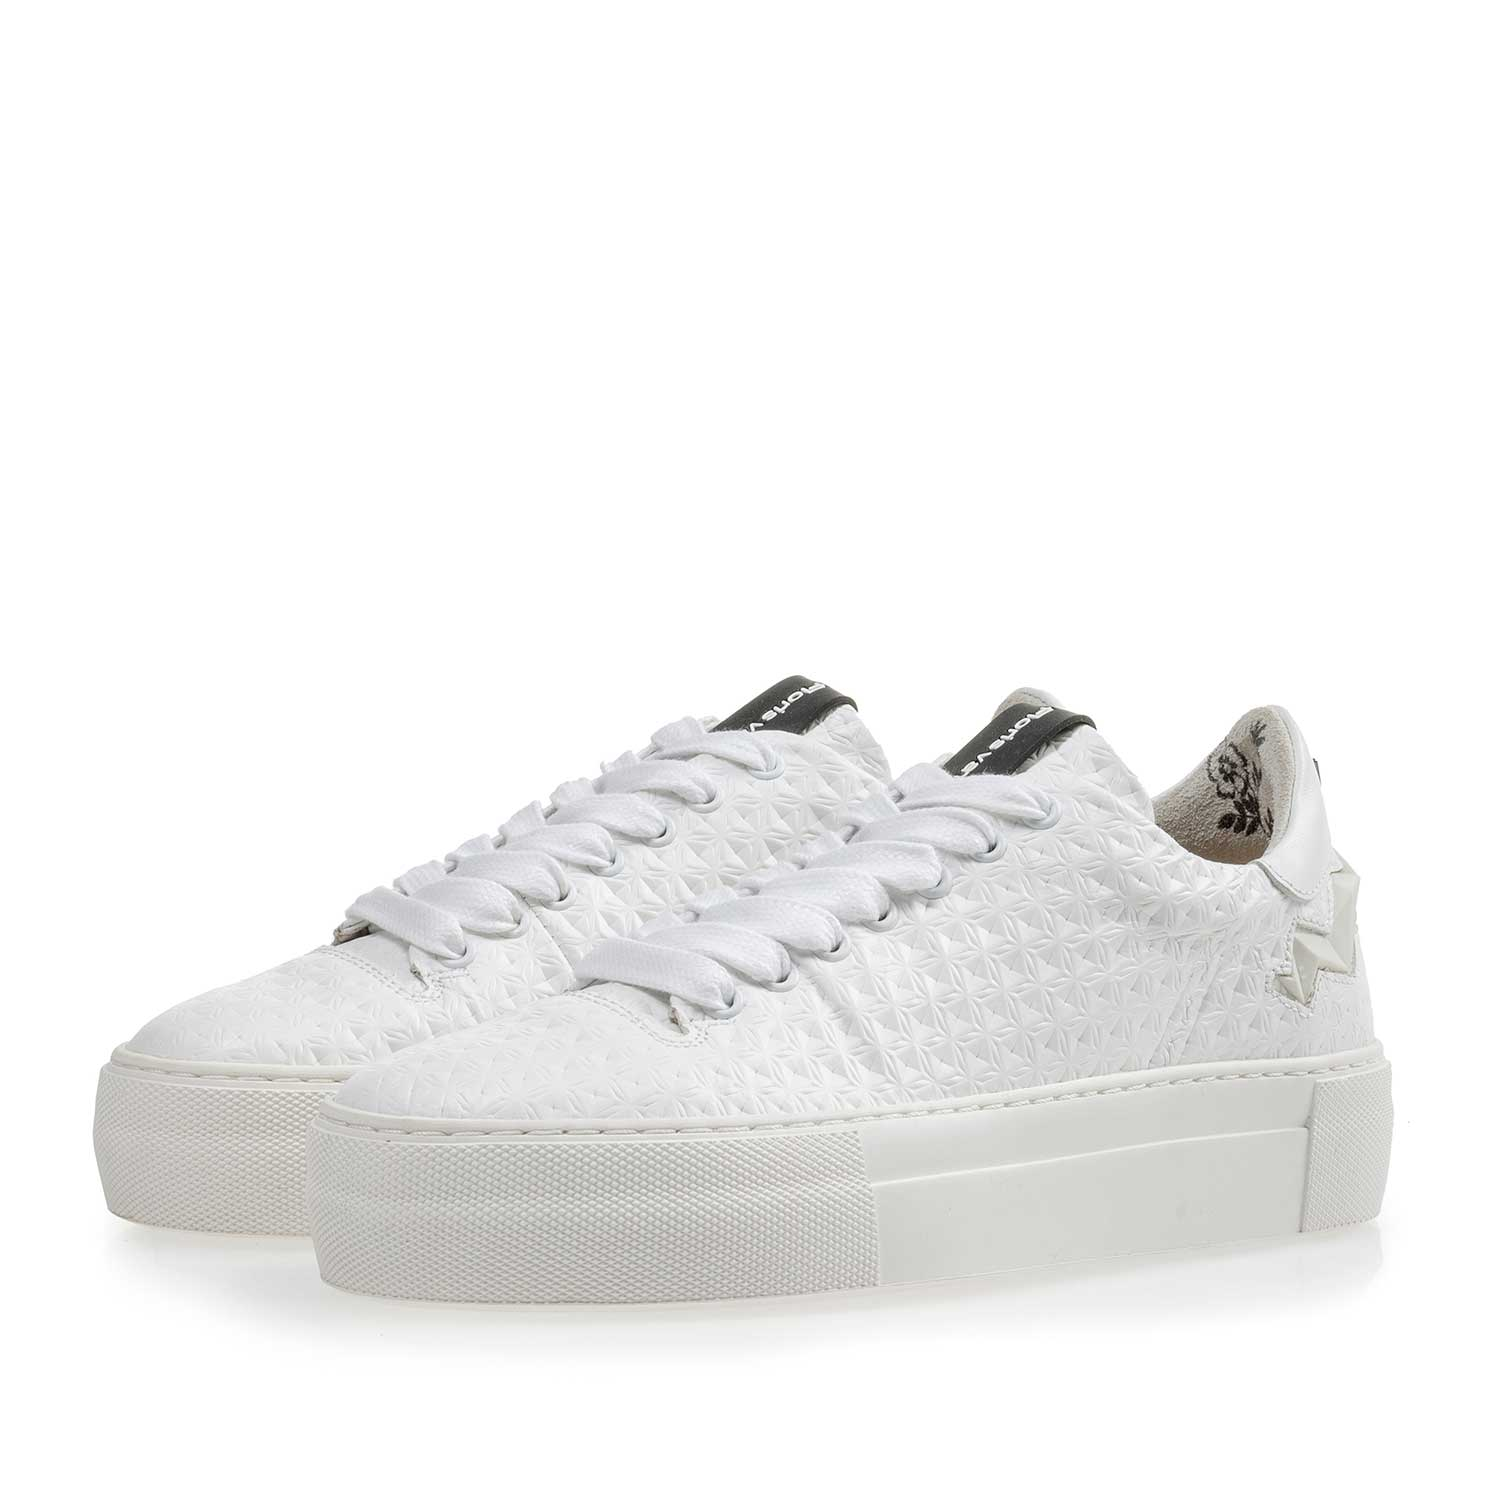 85234/00 - White patterned leather sneaker